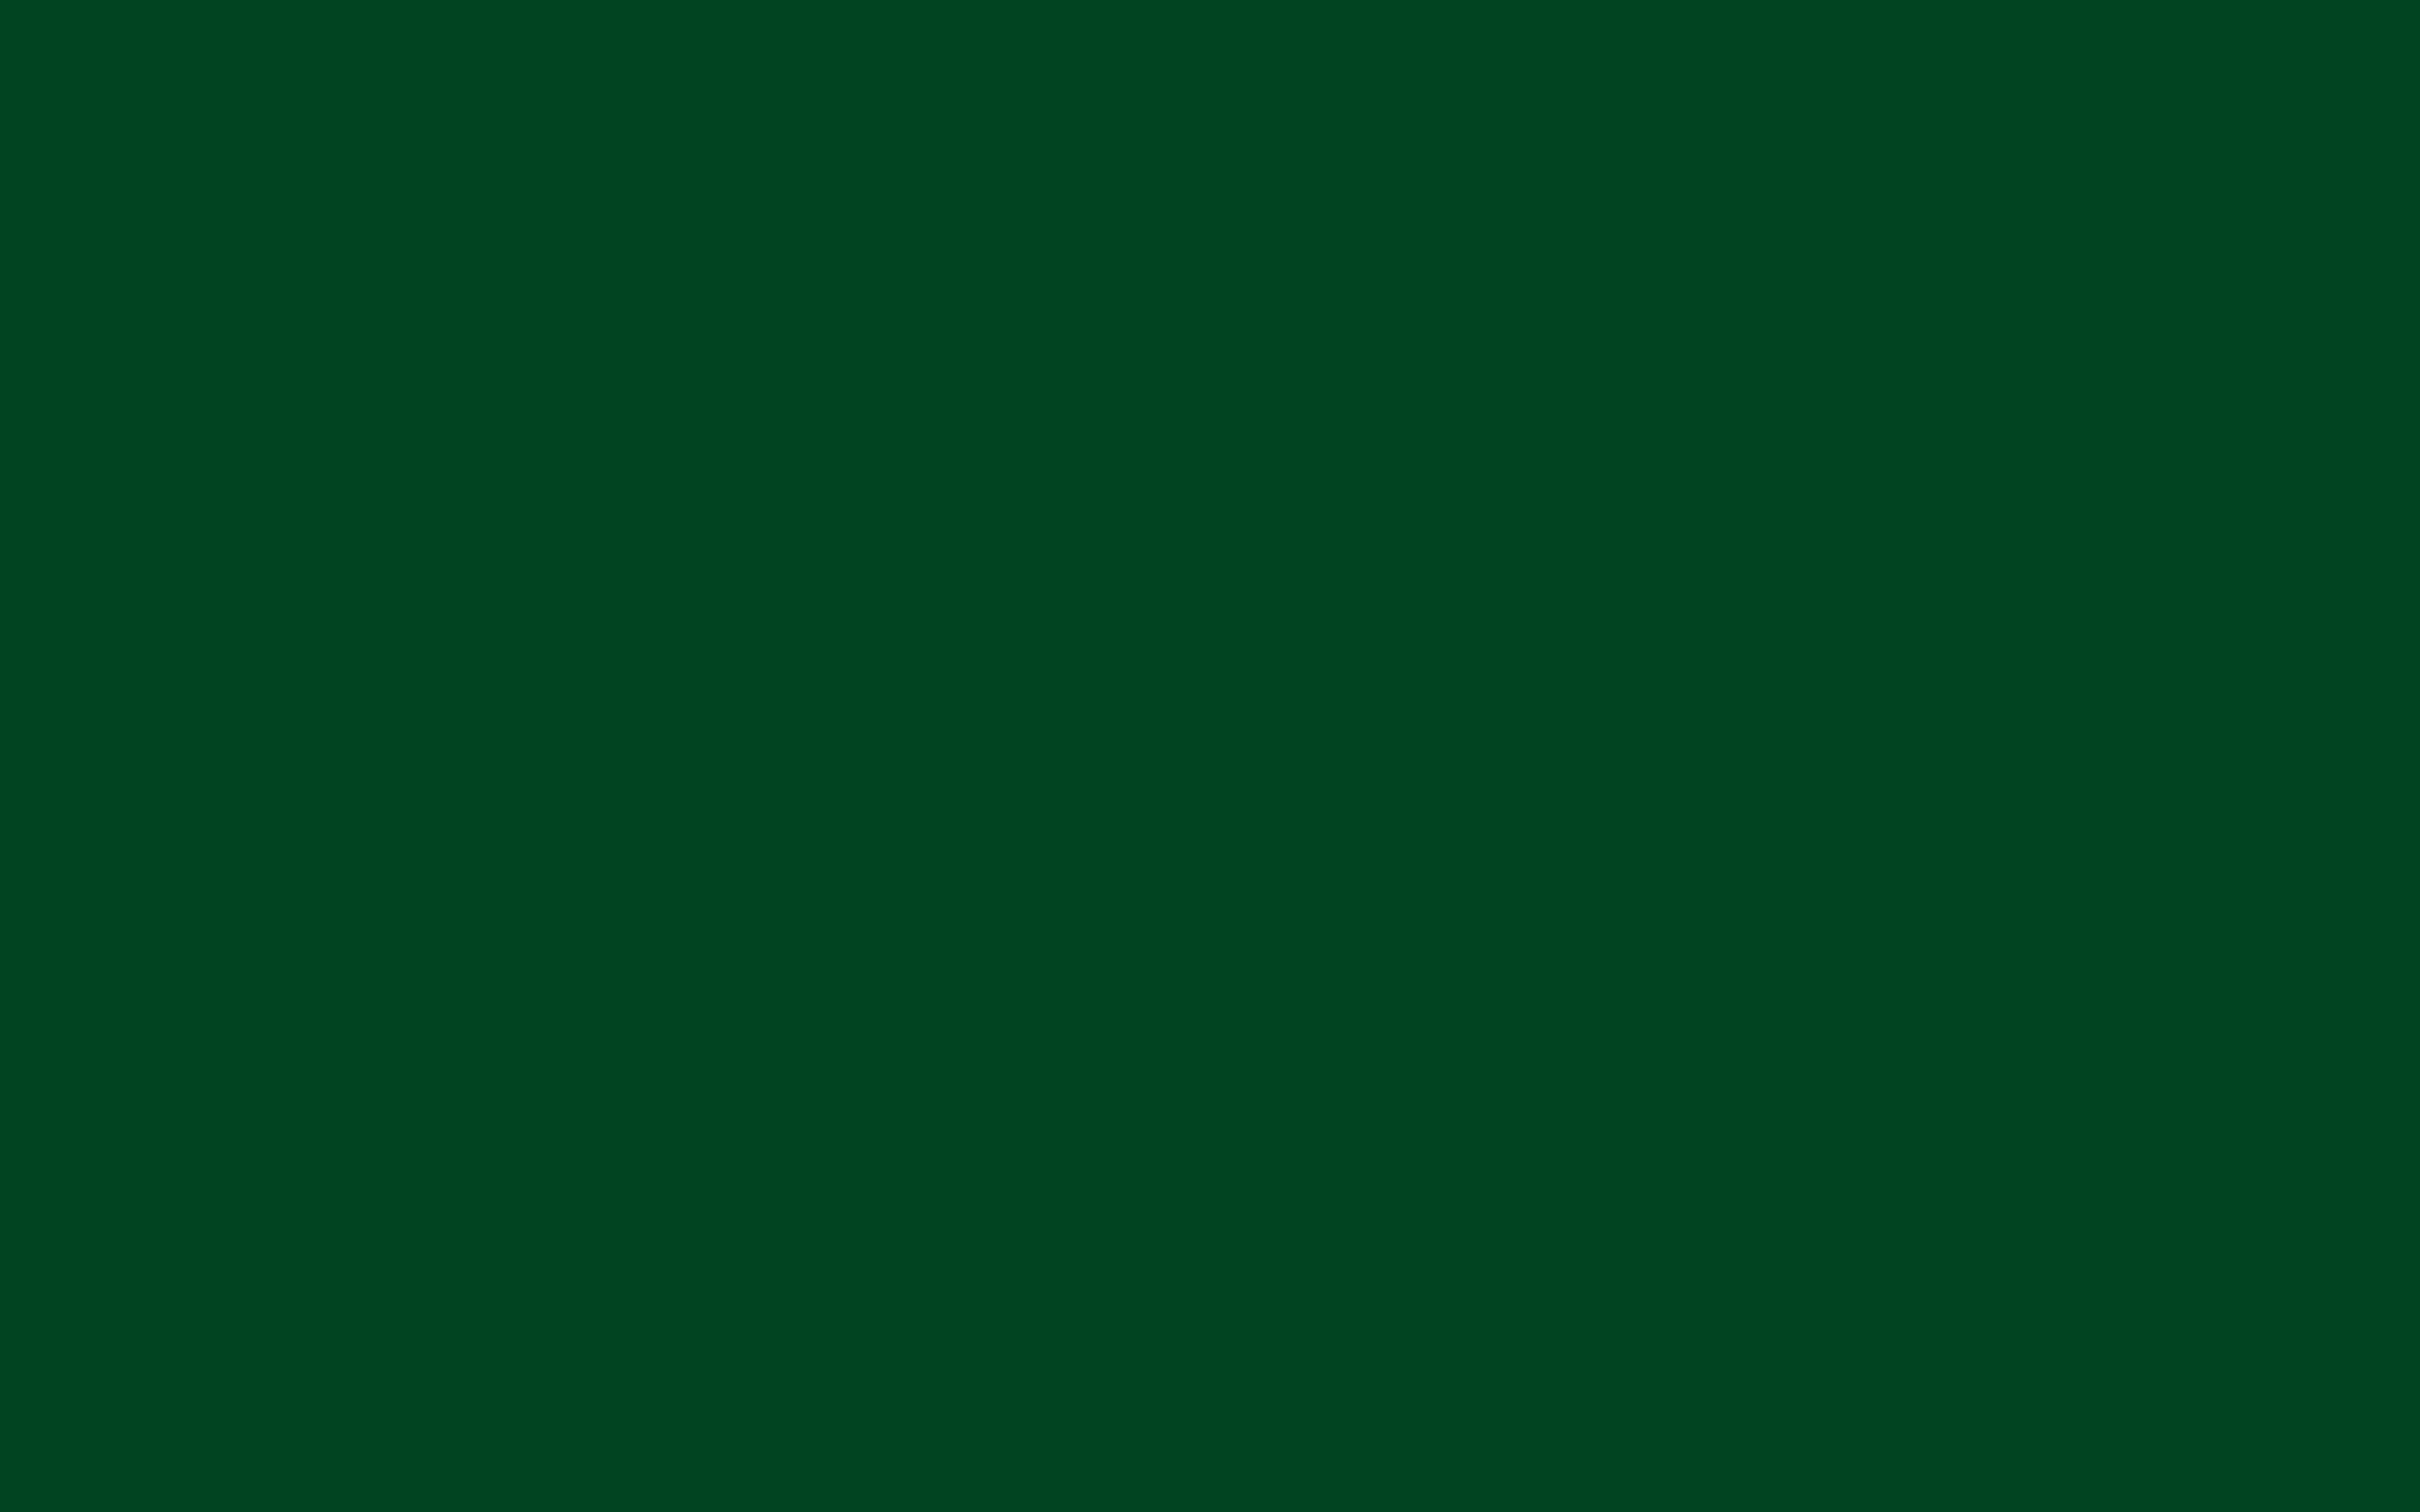 Forest Green Solid Background 8693 2880 x 1800 2880x1800